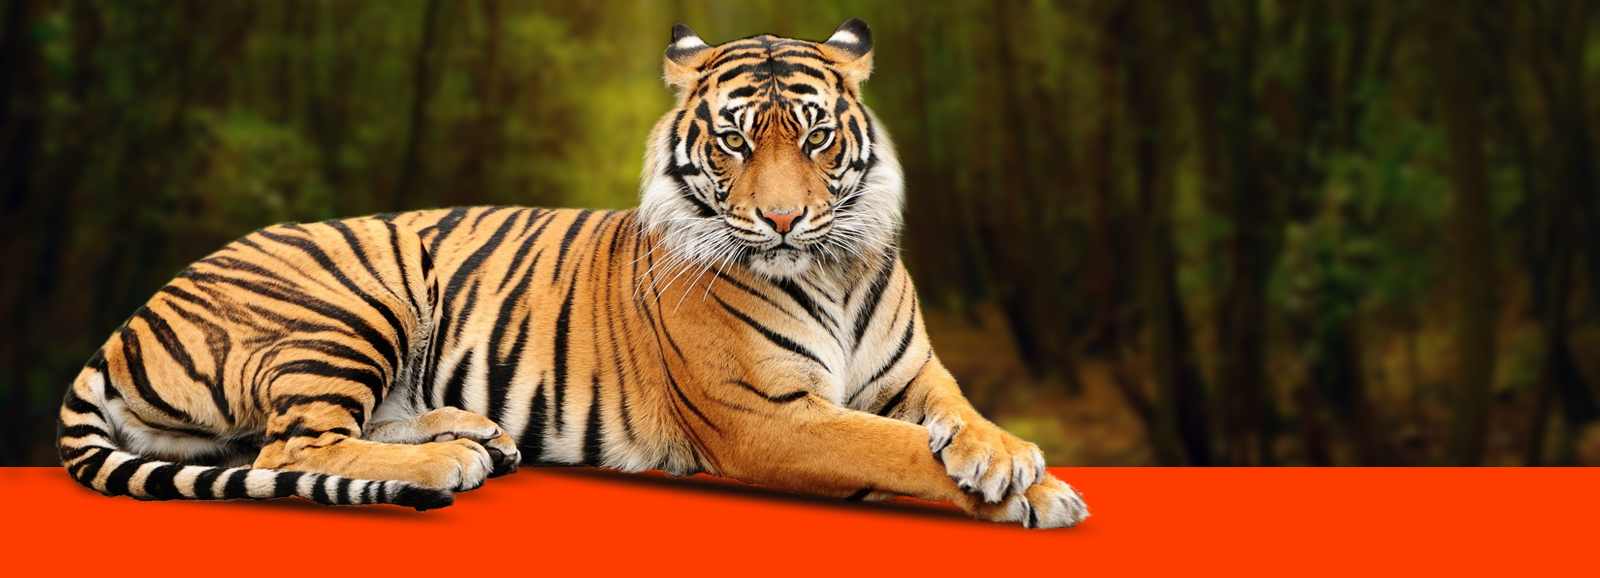 tiger identification,identification of tigers,wildlife sanctuary